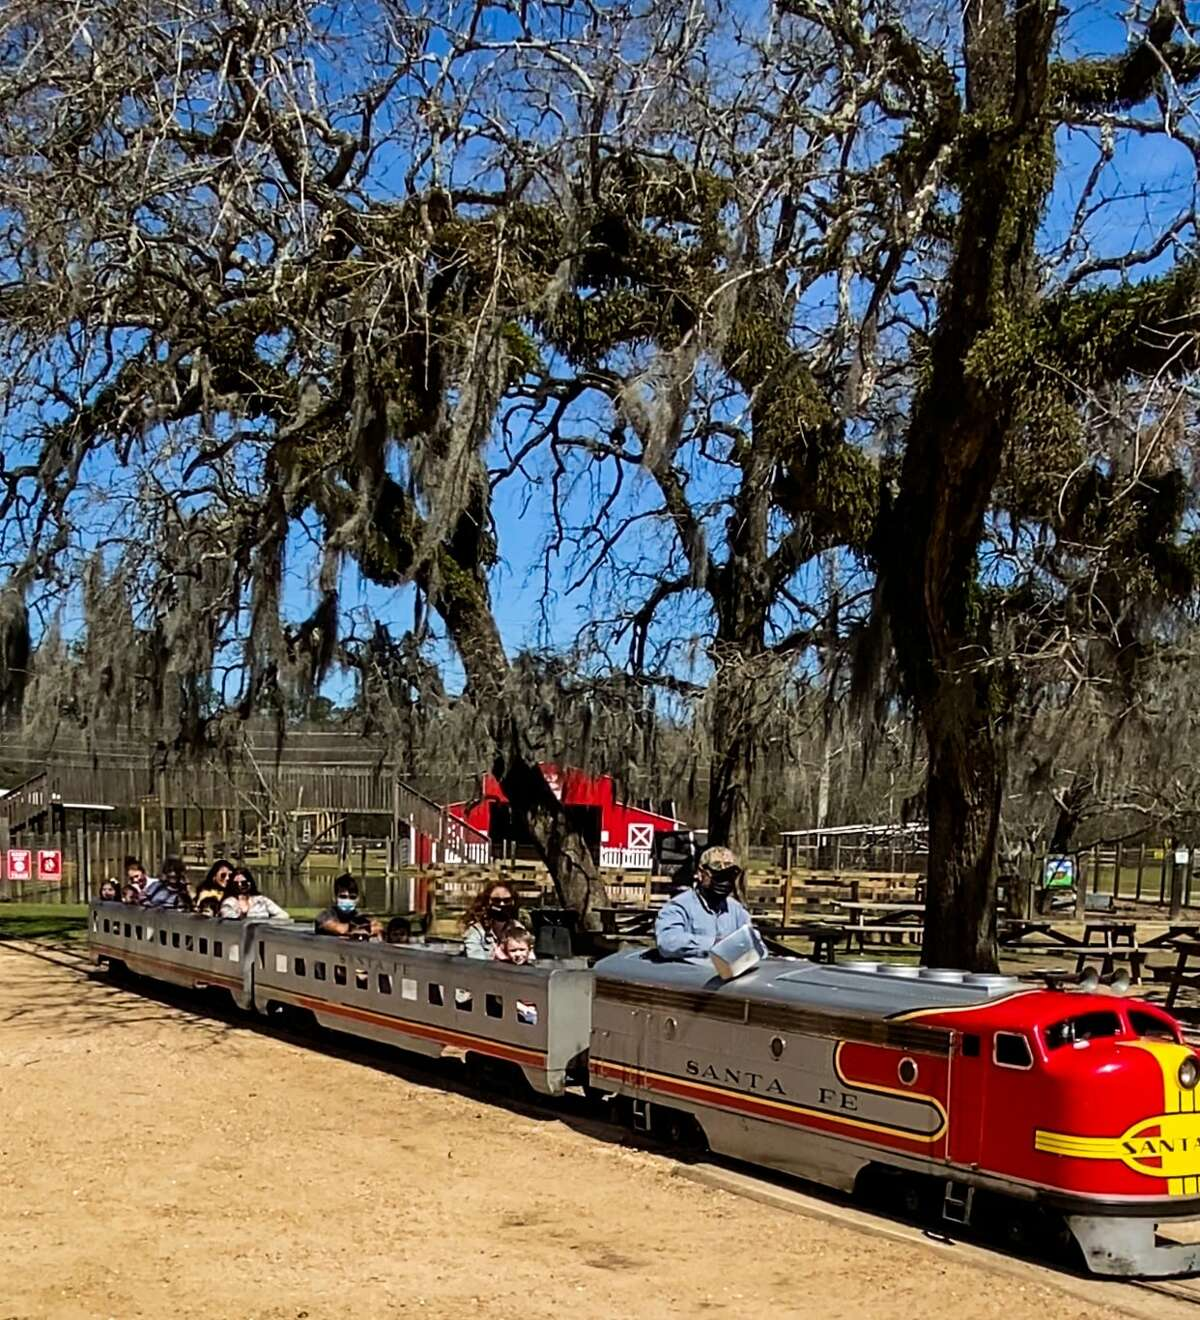 THE TRAIN RIDE The train ride is included with farm admission, which is $15 per person and free for babies under 18 months. The train is limited to provide two rides per visit.  All other activities, like the pony rides, petting zoos, and swimming pool, is also included in admission.